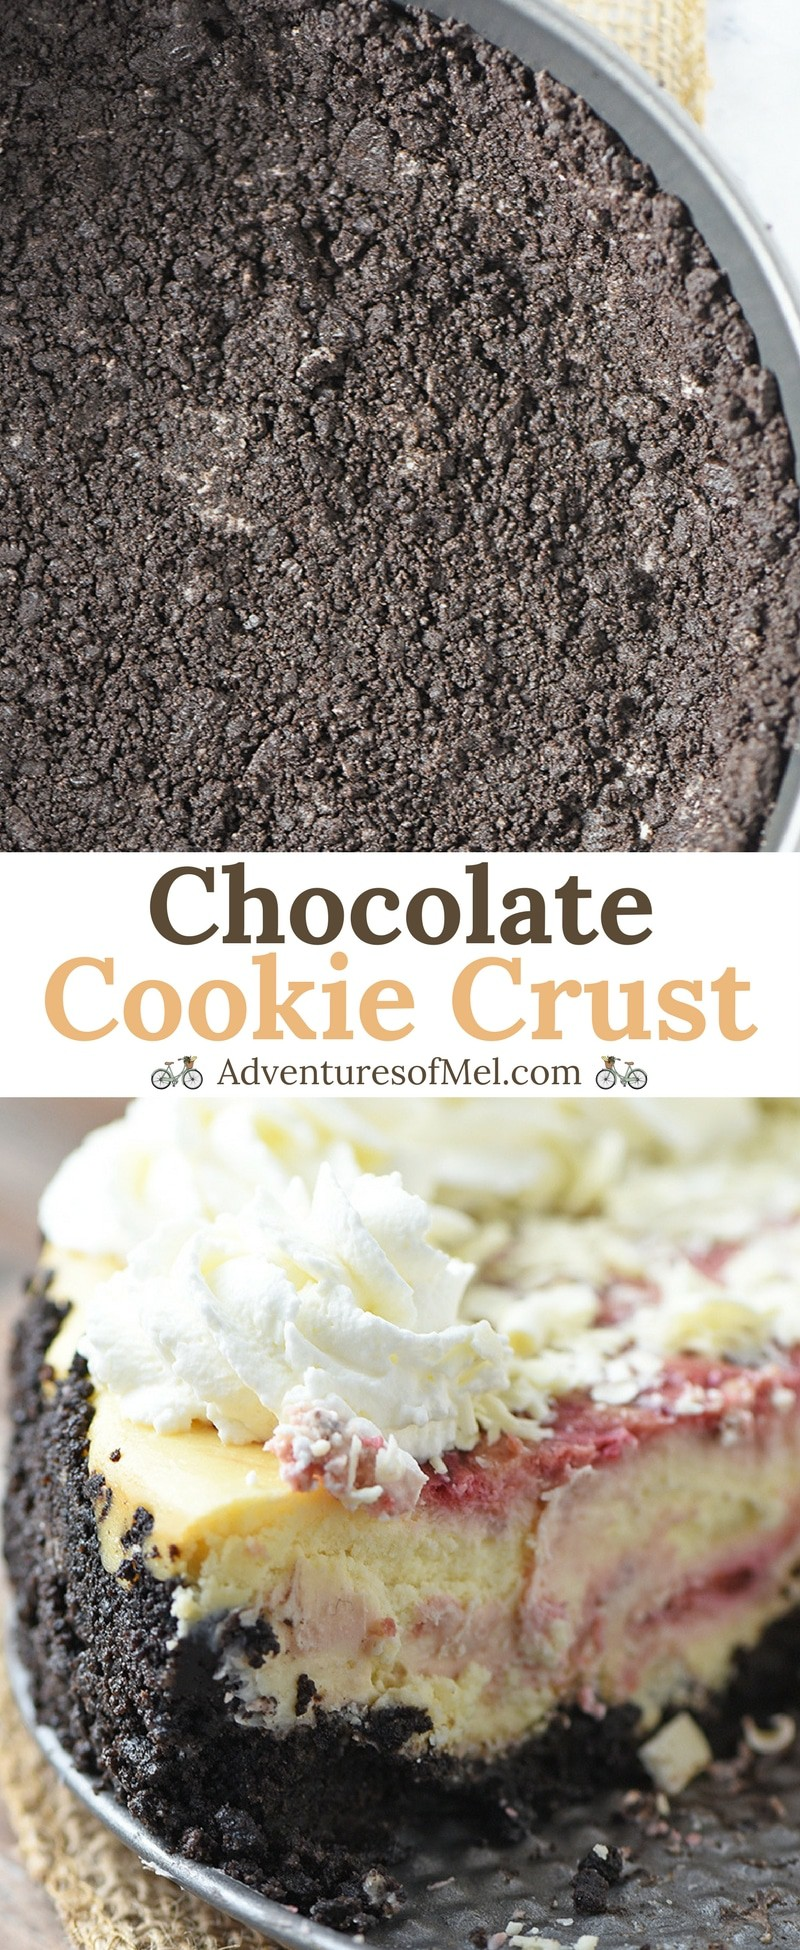 Chocolate Cookie Crust for Simple Desserts